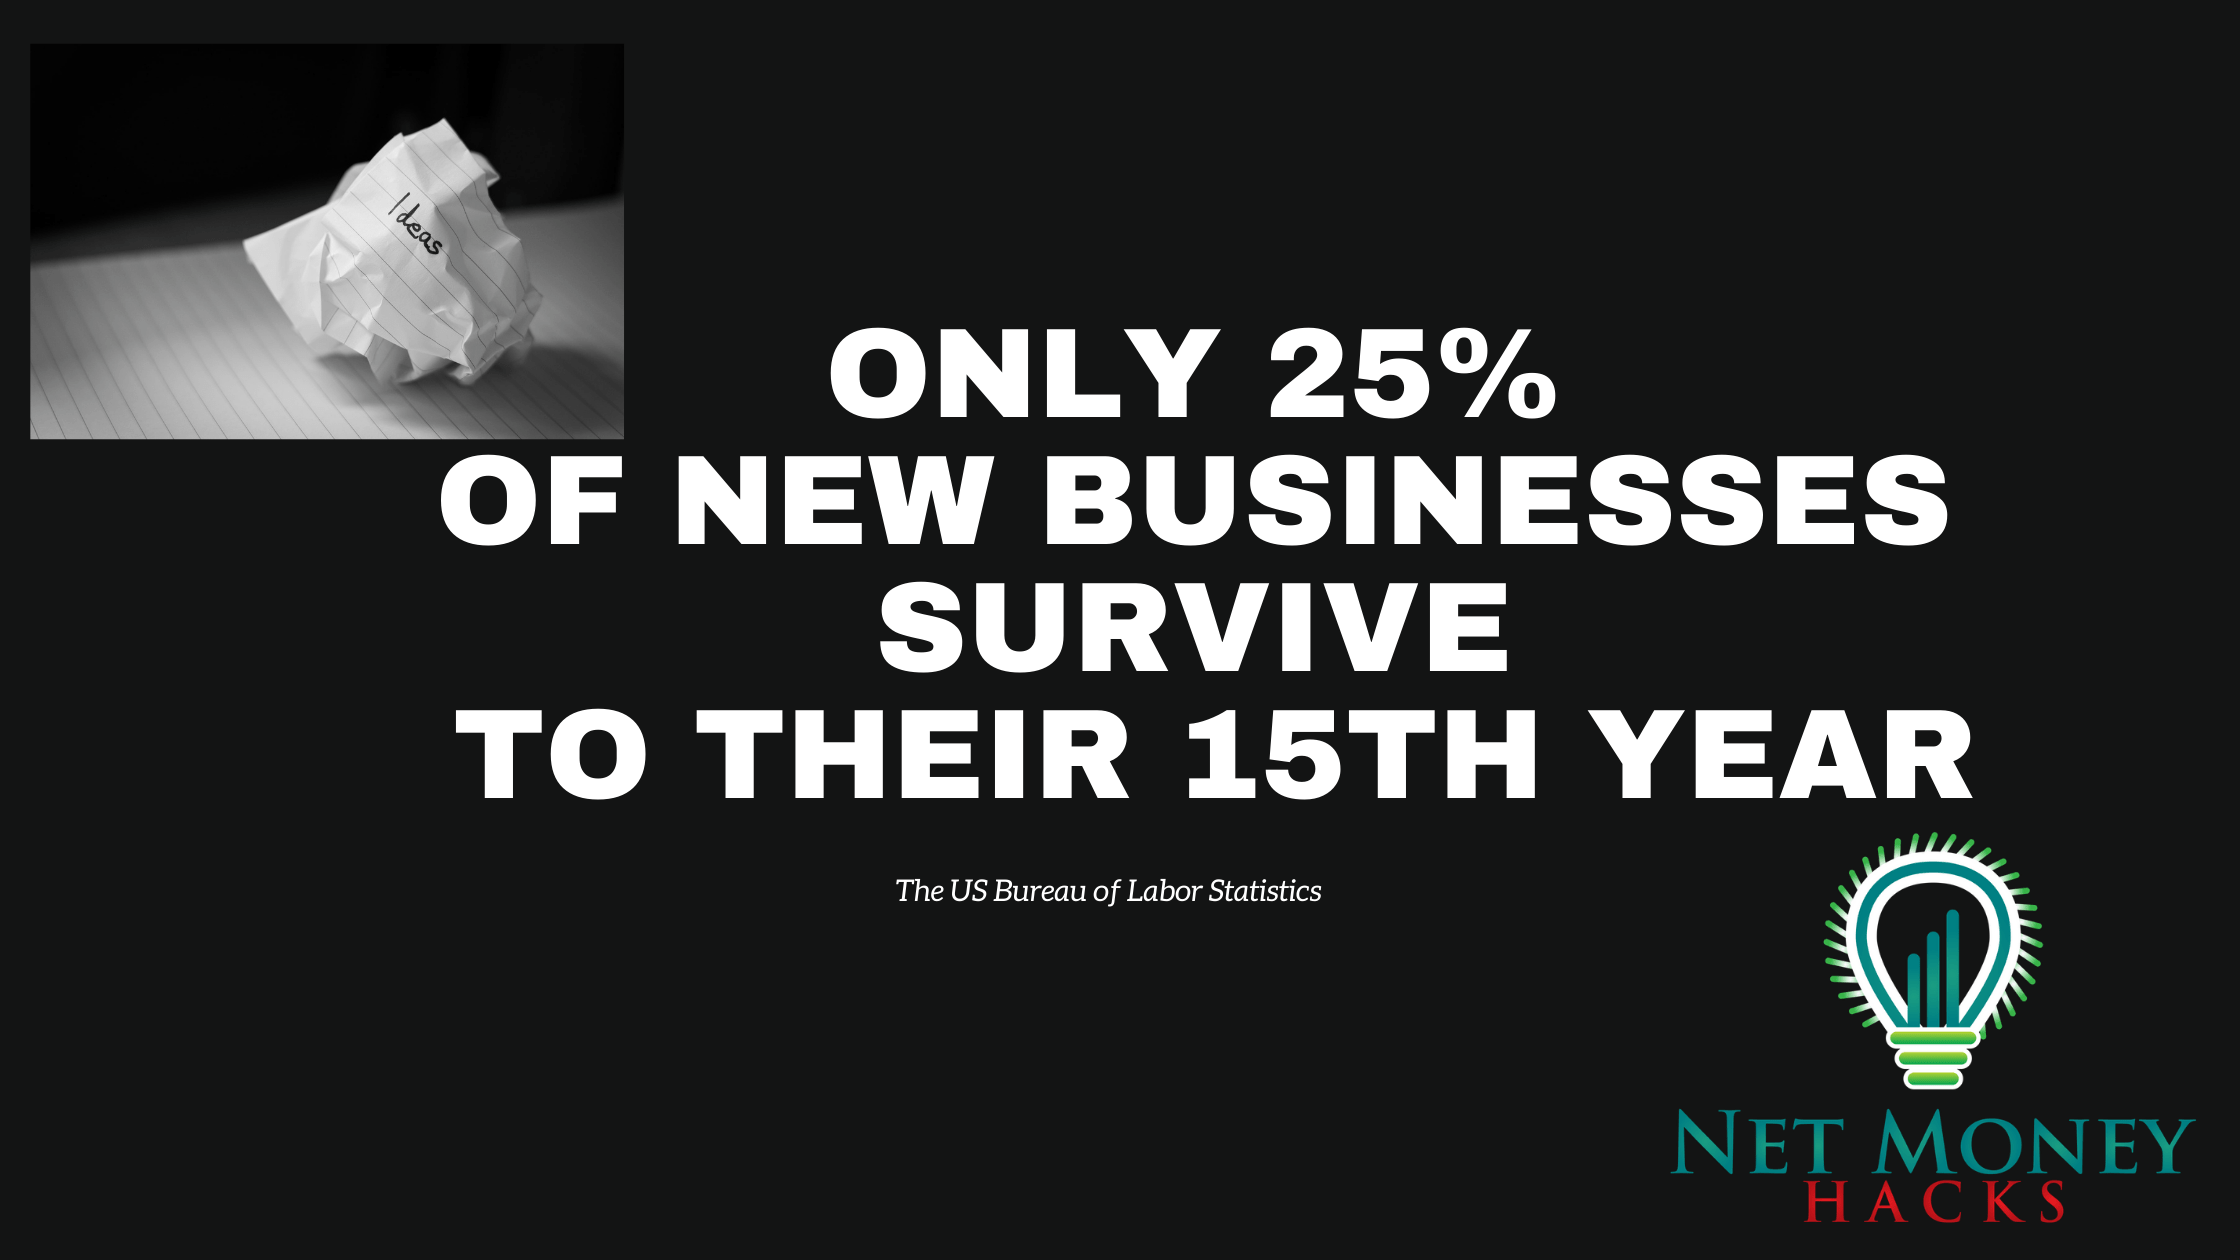 Banner showing new business survival rate stats